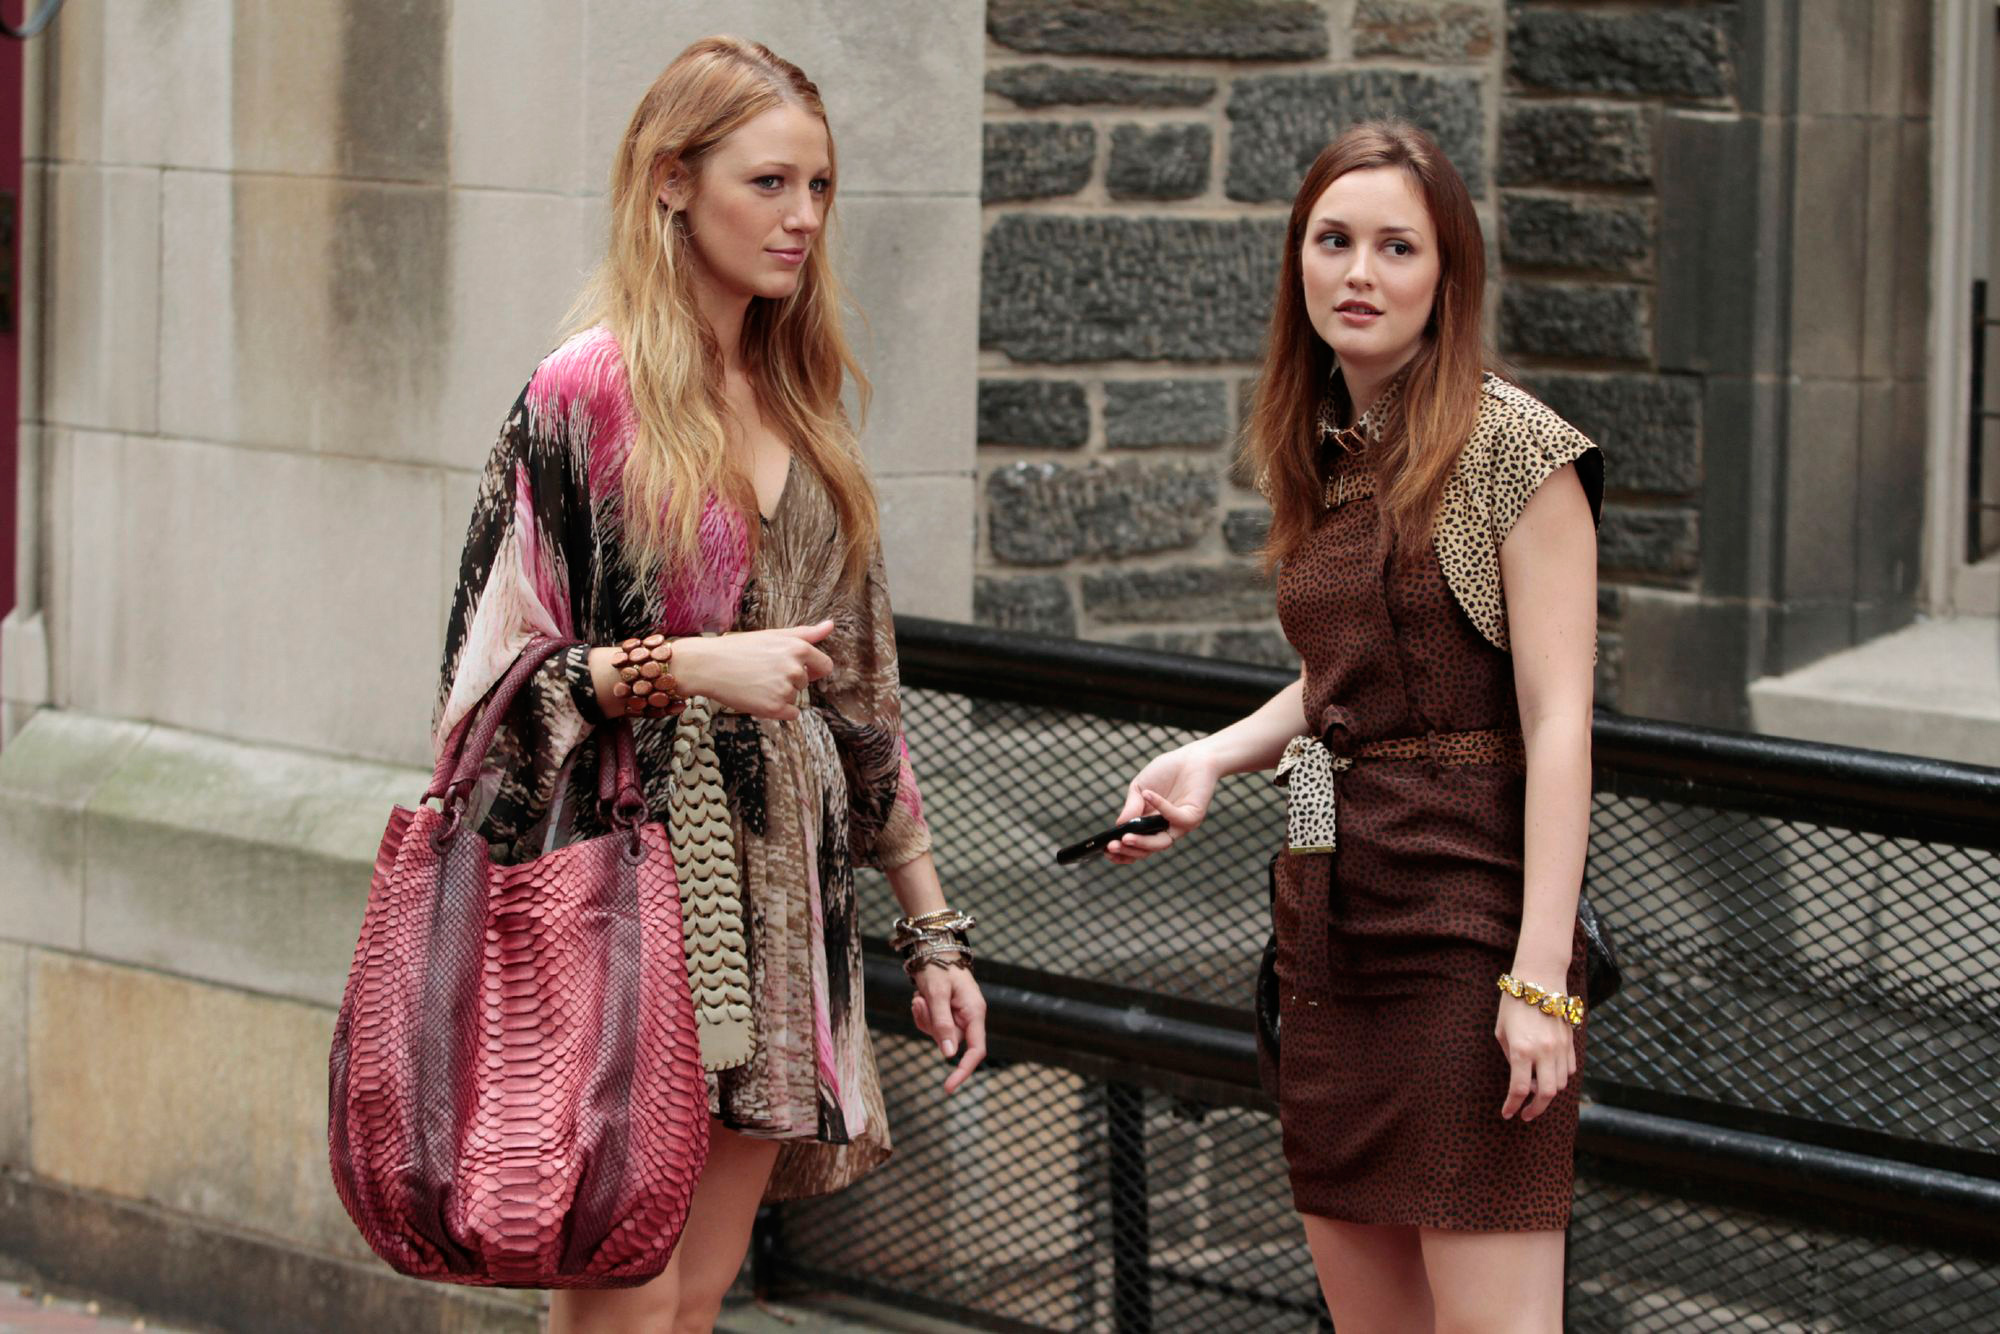 6 Changes That Made The Gossip Girl Show Better Than The